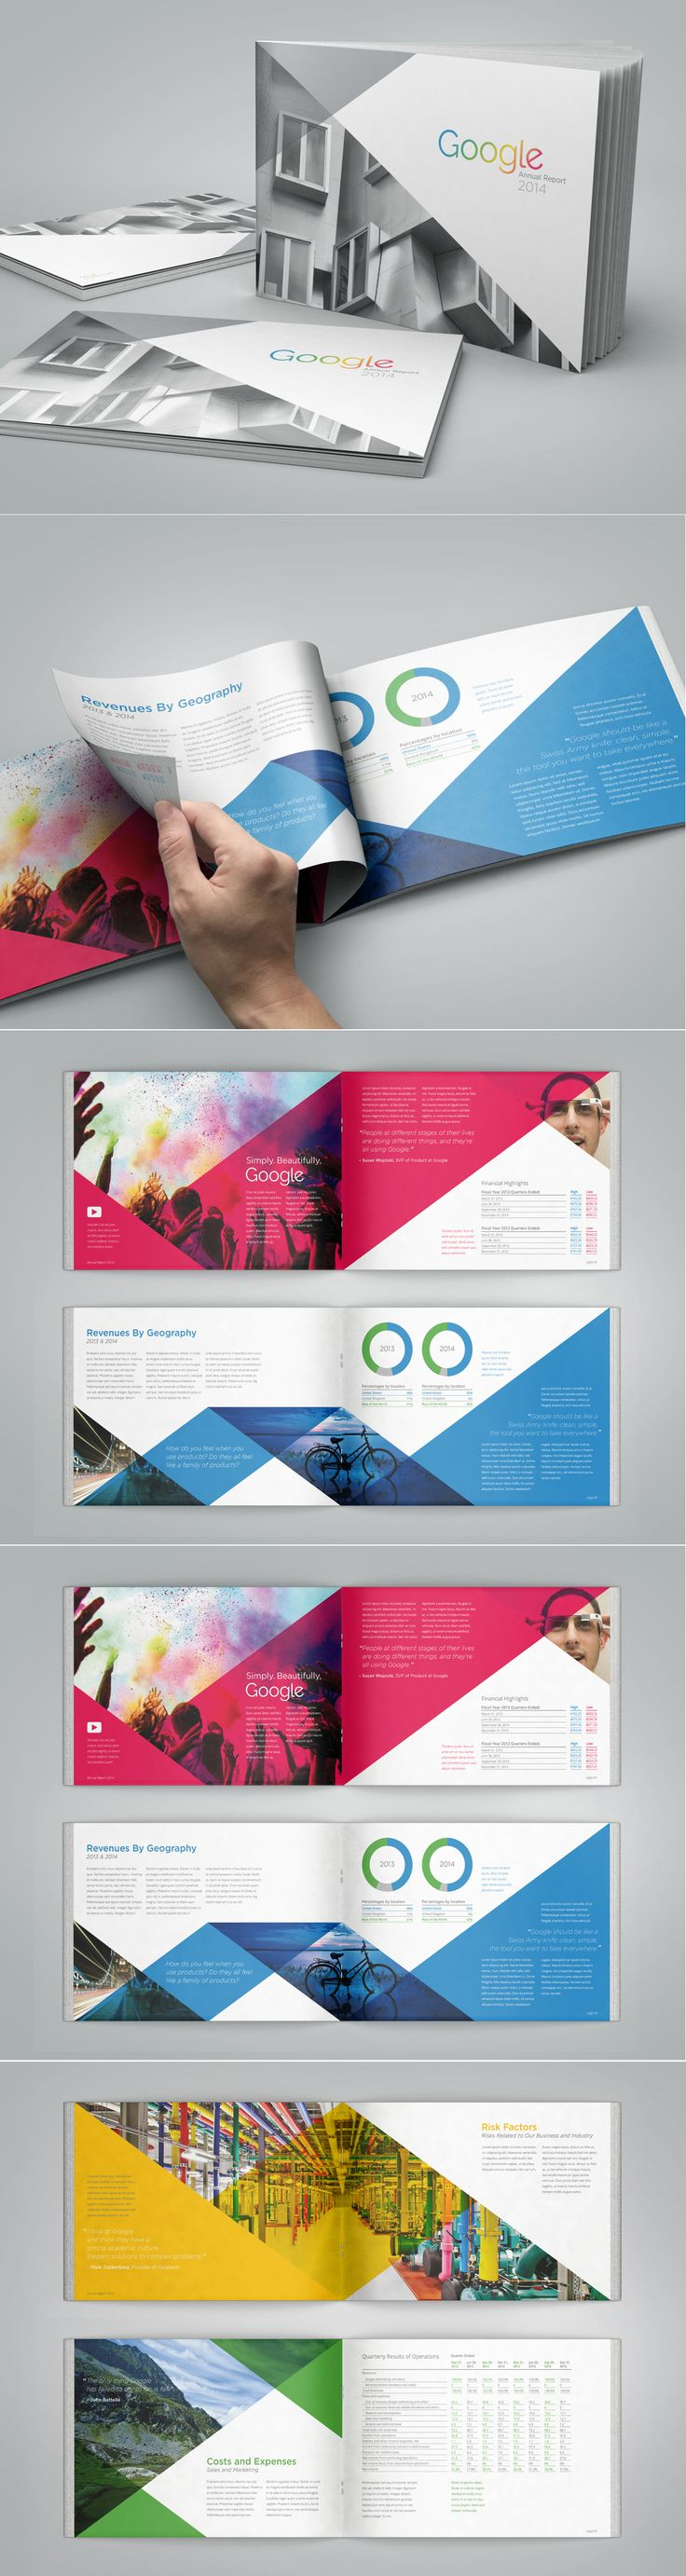 5 Creative Annual Report Designs - Dome Printing